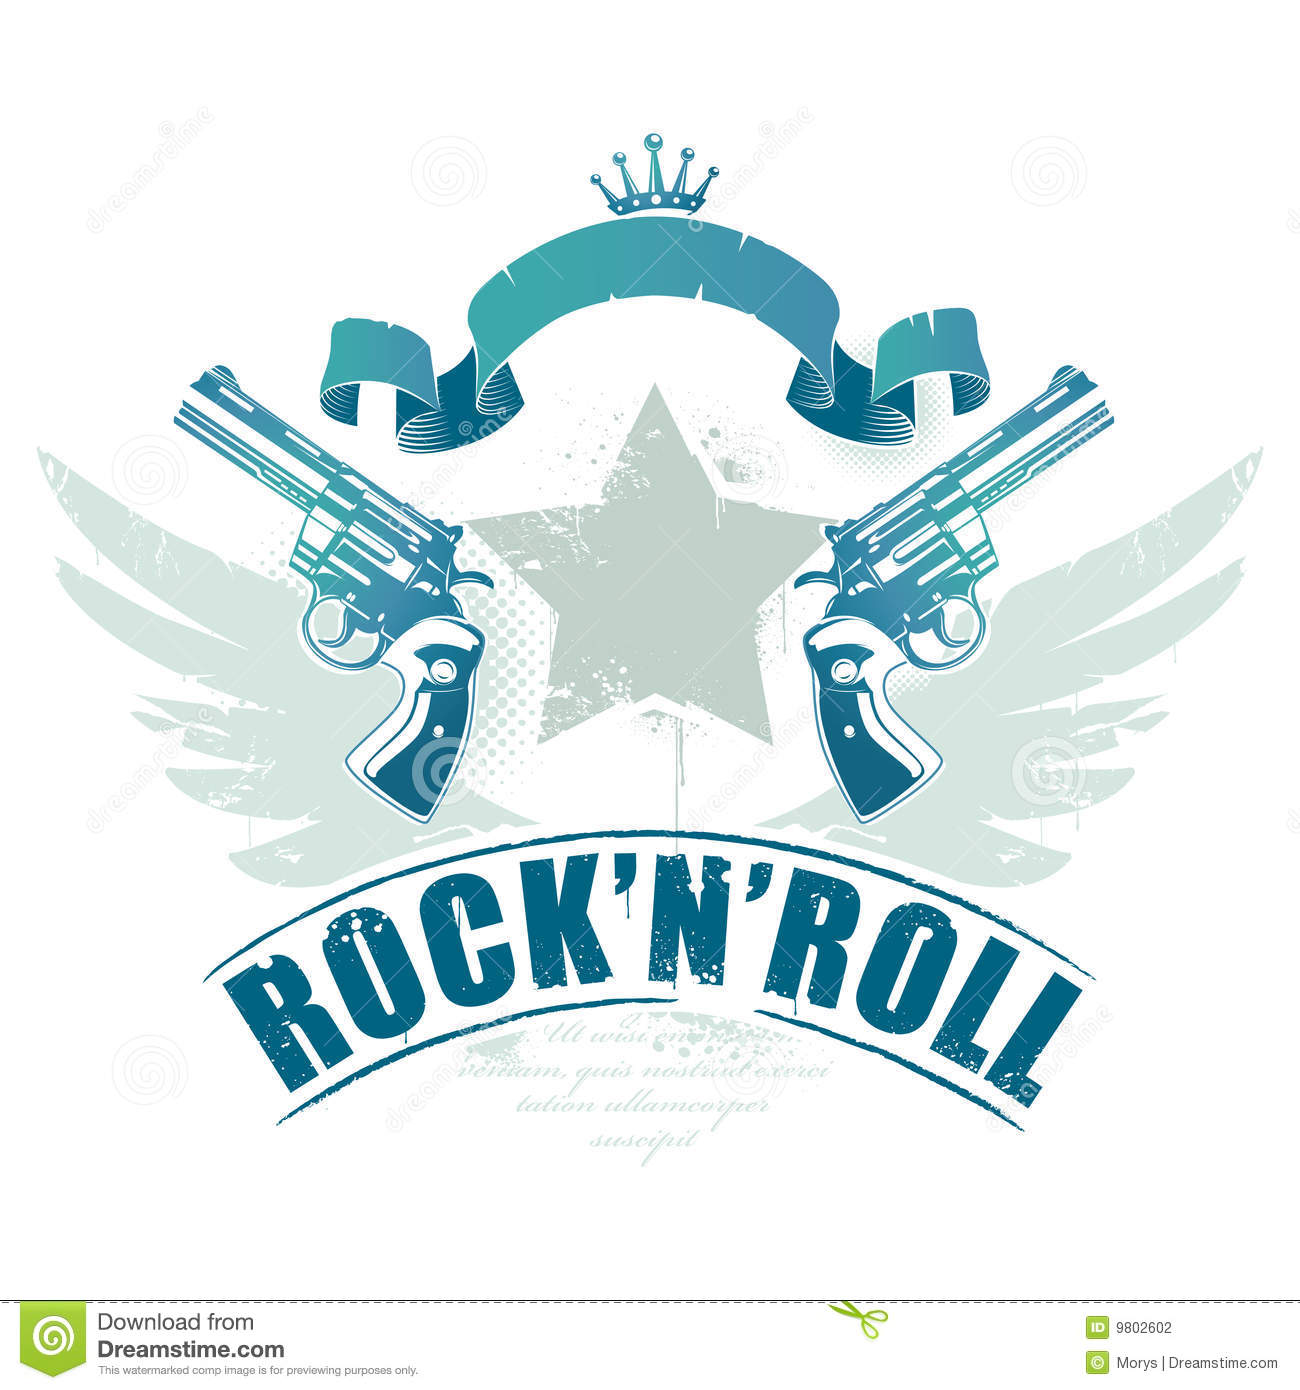 Abstract rock-n-roll image